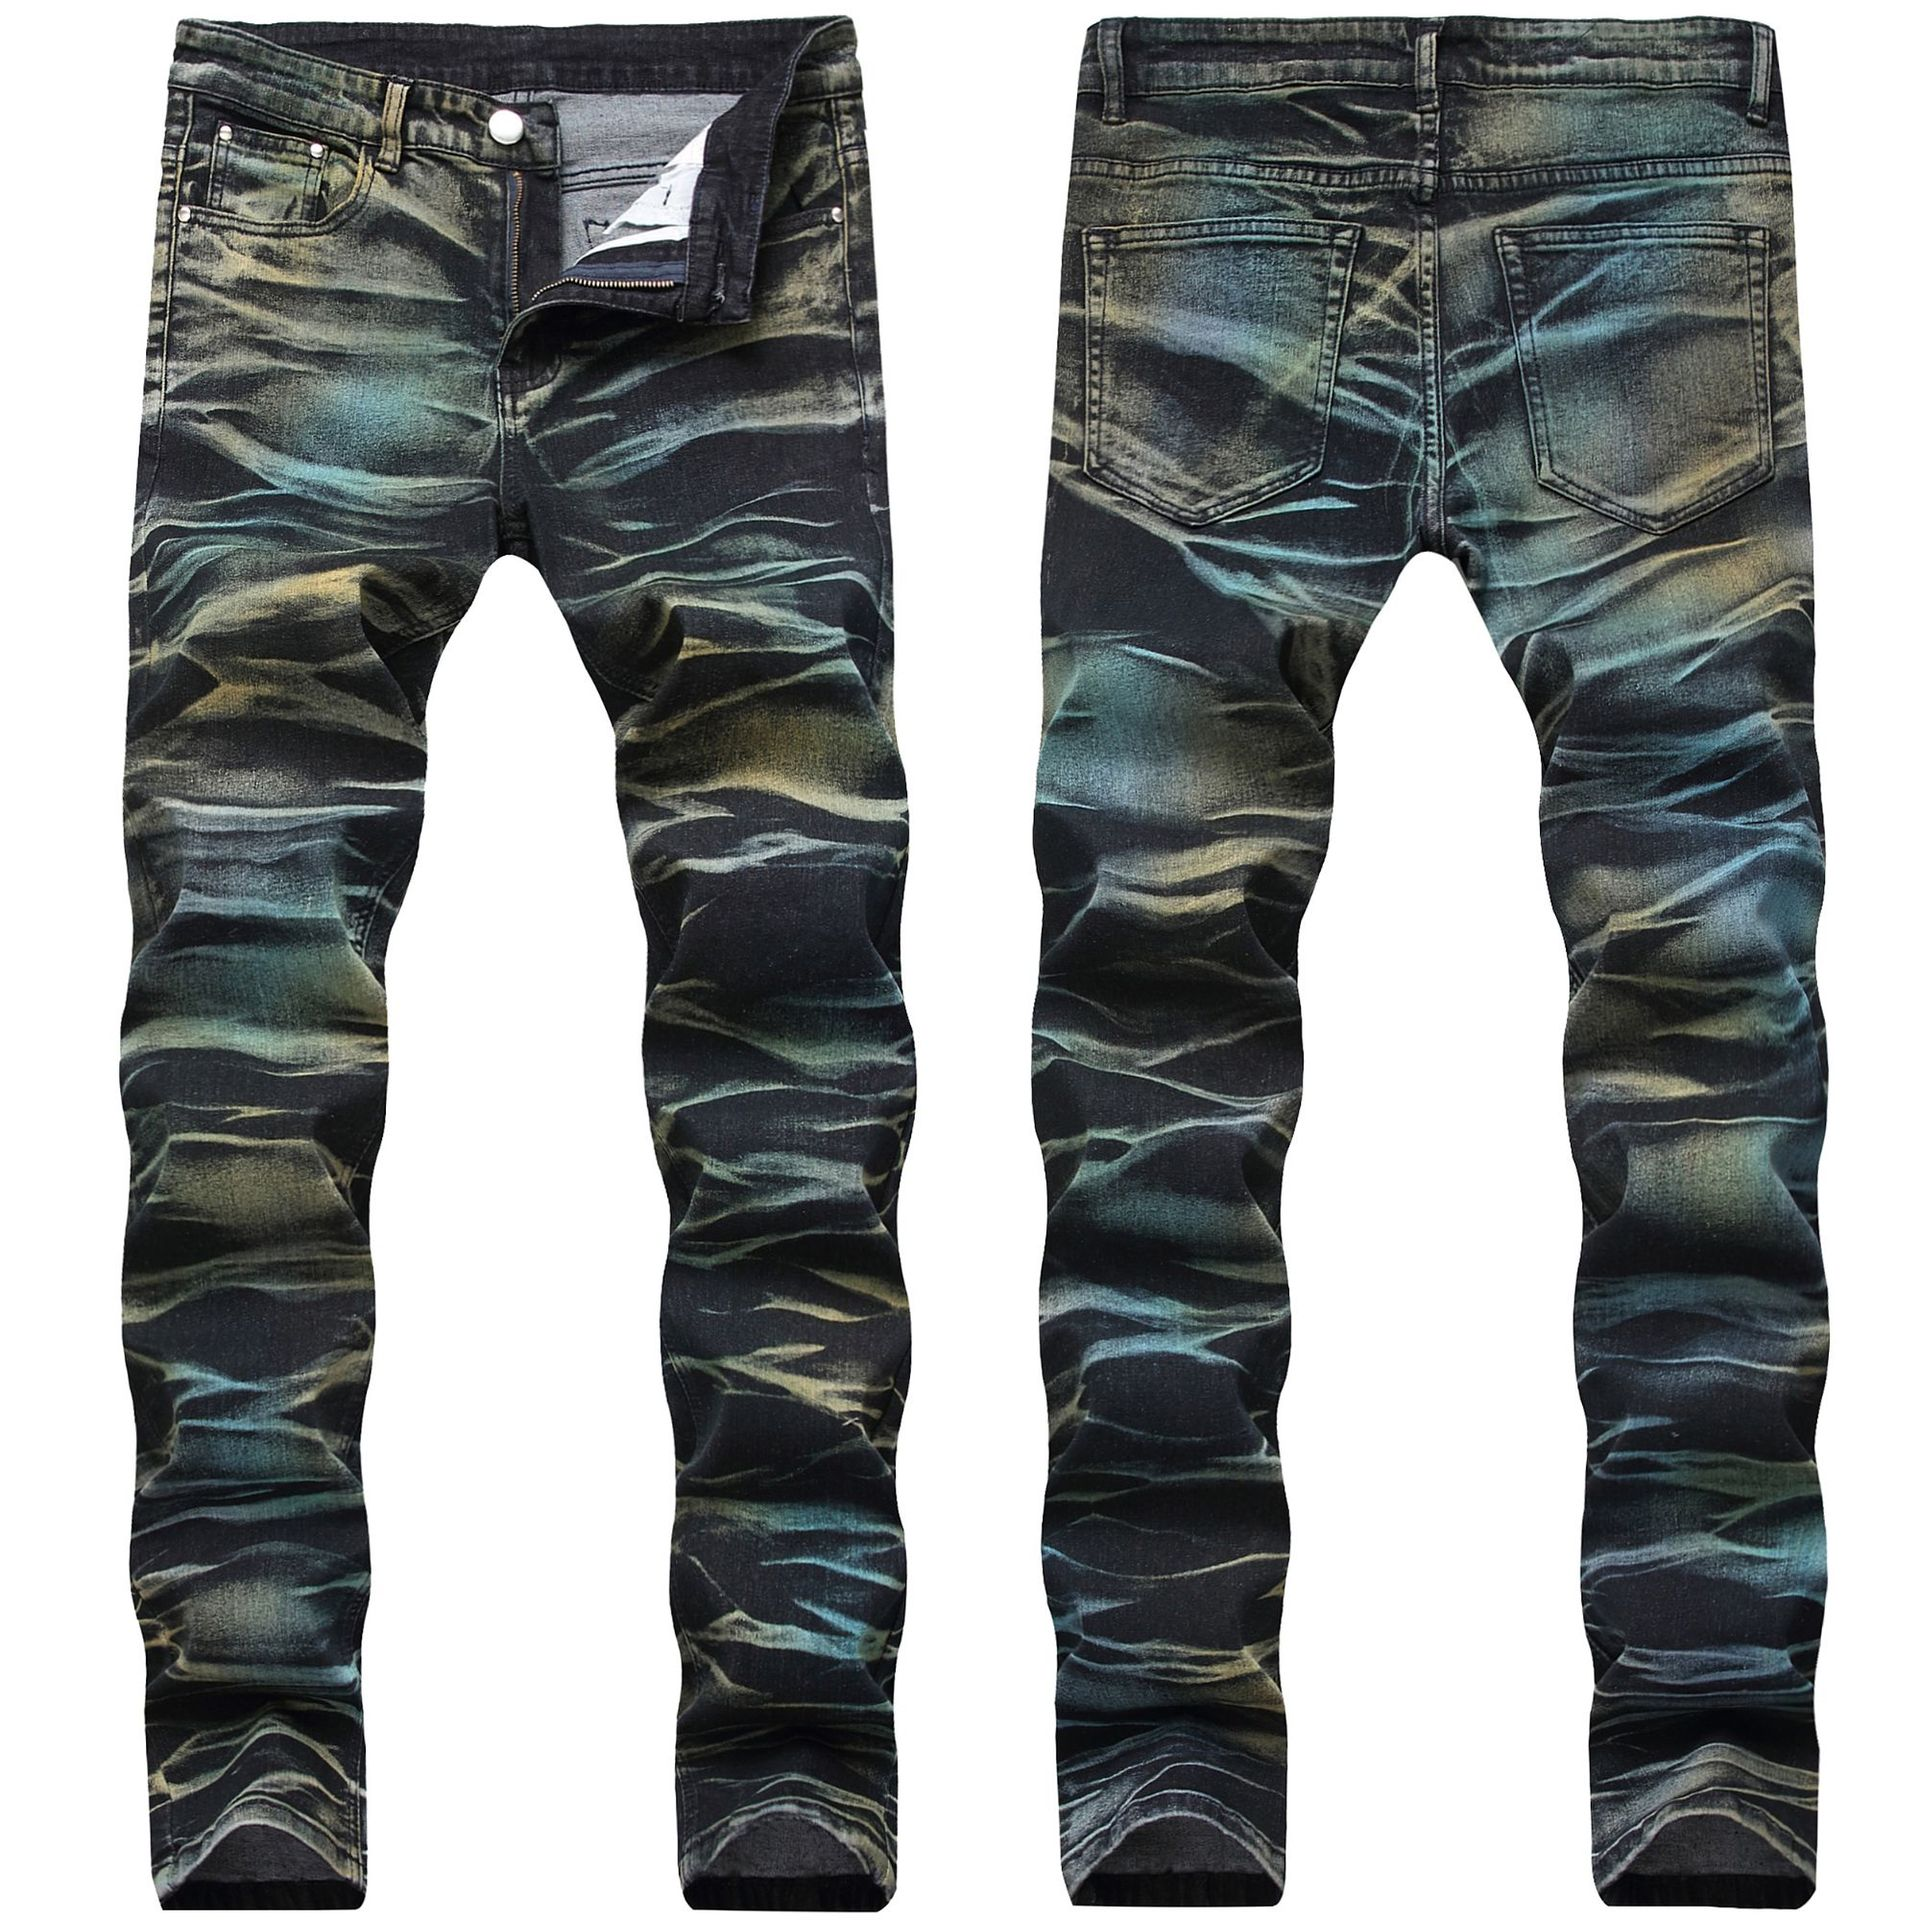 Men Camouflage Jeans Male Straight Classic Jeans Trousers Men Brand Ripped Skinny Slim Casual Denim Stretch Jeans Color Pants